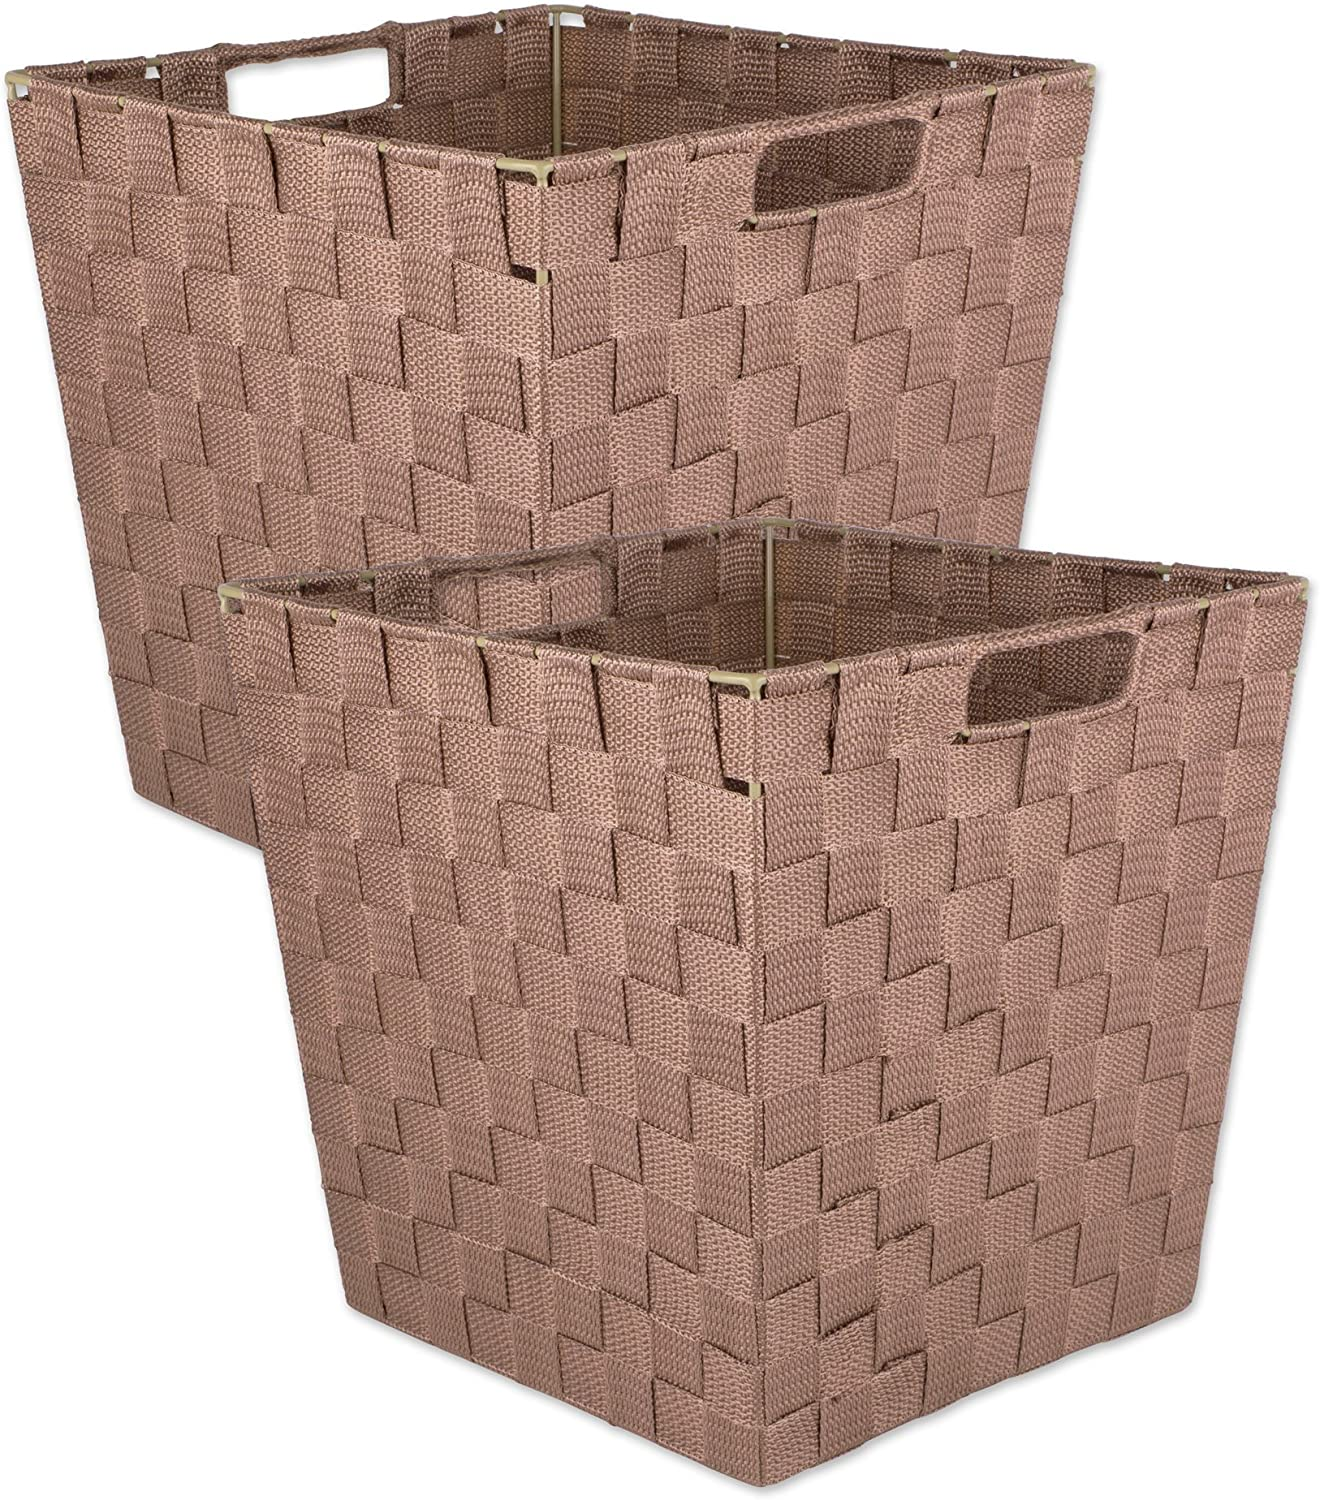 DII Durable Trapezoid Woven Nylon Storage Bin or Basket for Organizing Your Home Teal-Set of 2 Basket-12x10x8 Office or Closets